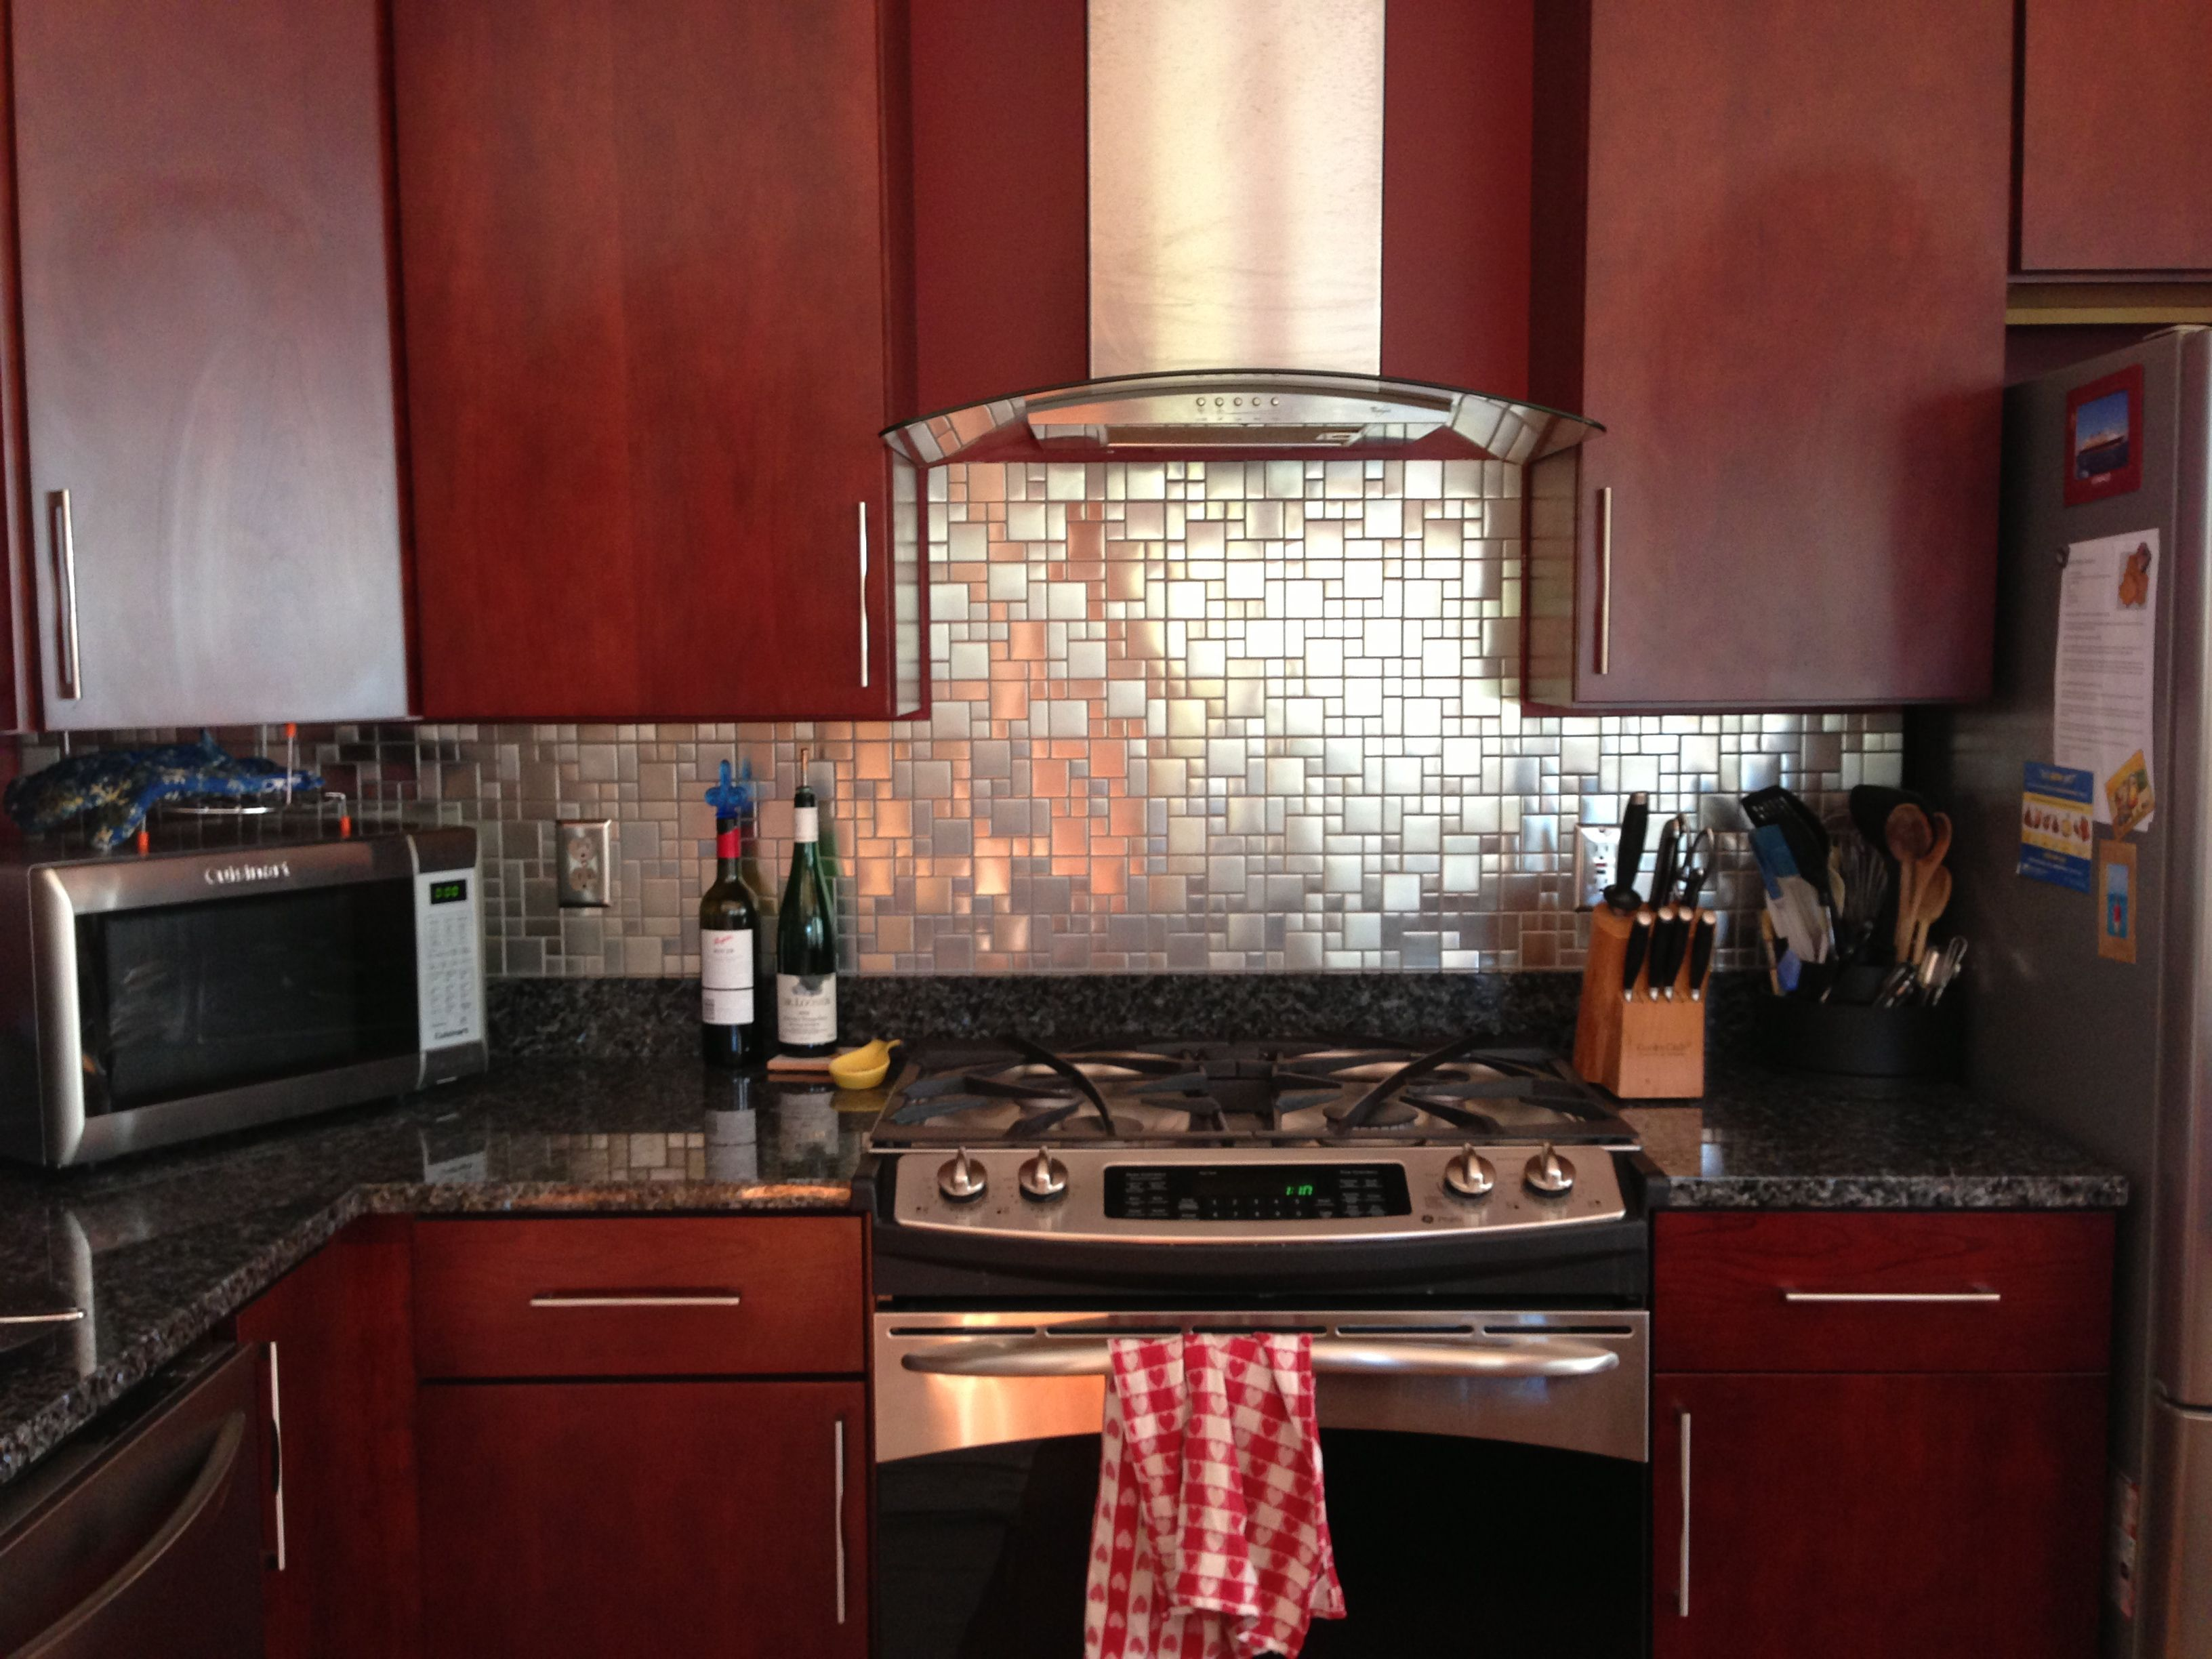 Kitchen Switch Plates Kitchen Backsplash With Brushed Stainless Steel Tiles Matching